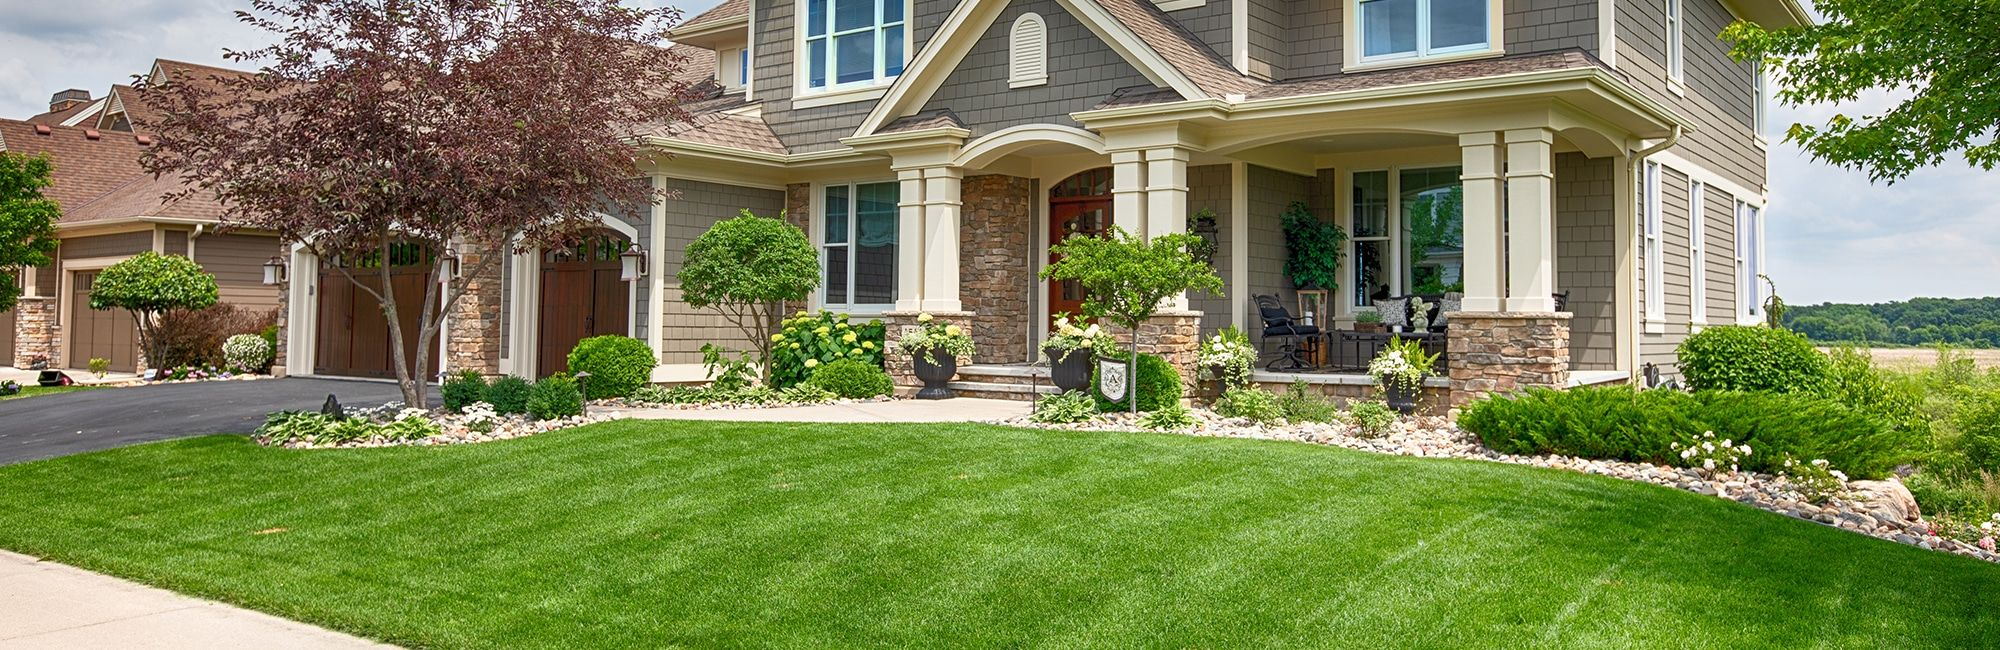 Landscaping Construction & Property Maintenance